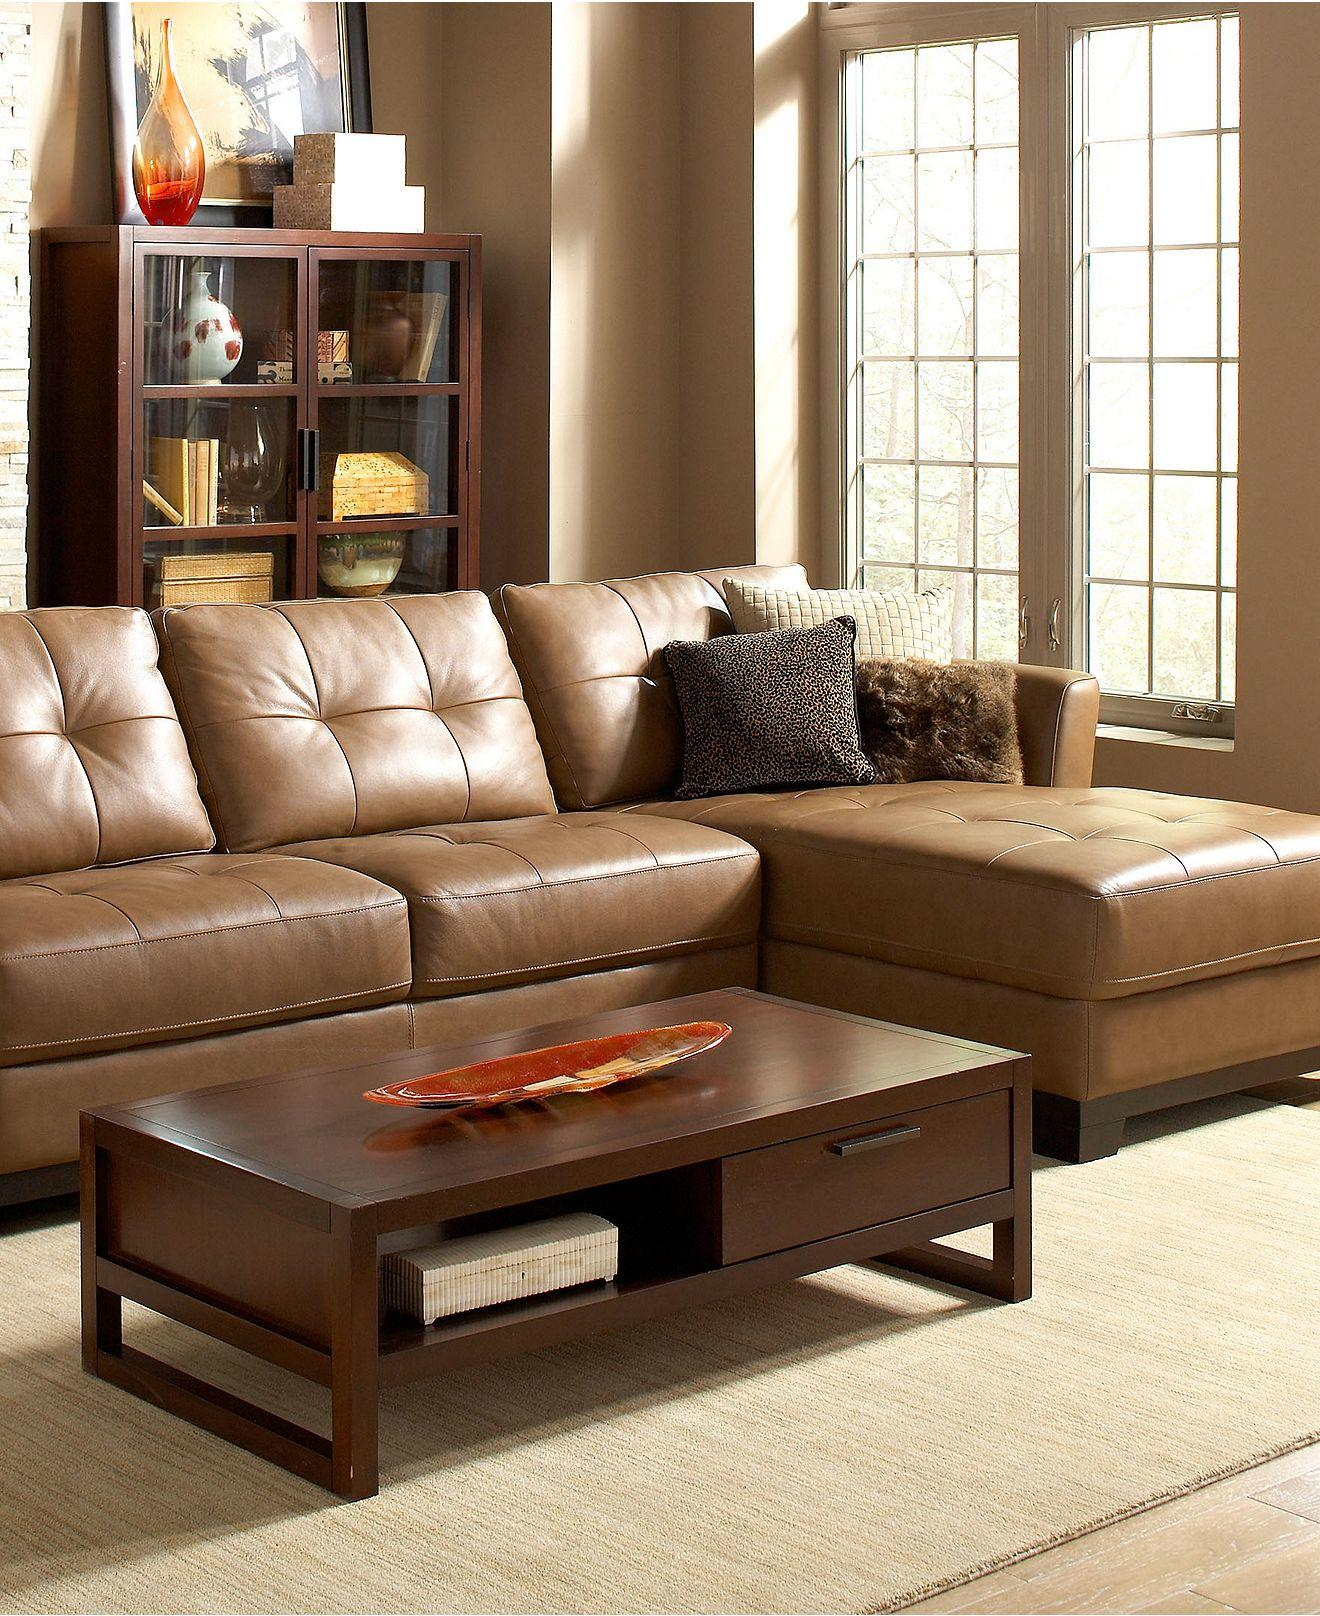 Living Room Furniture Leather Sectional: Martino Leather Sectional Living Room From Macys